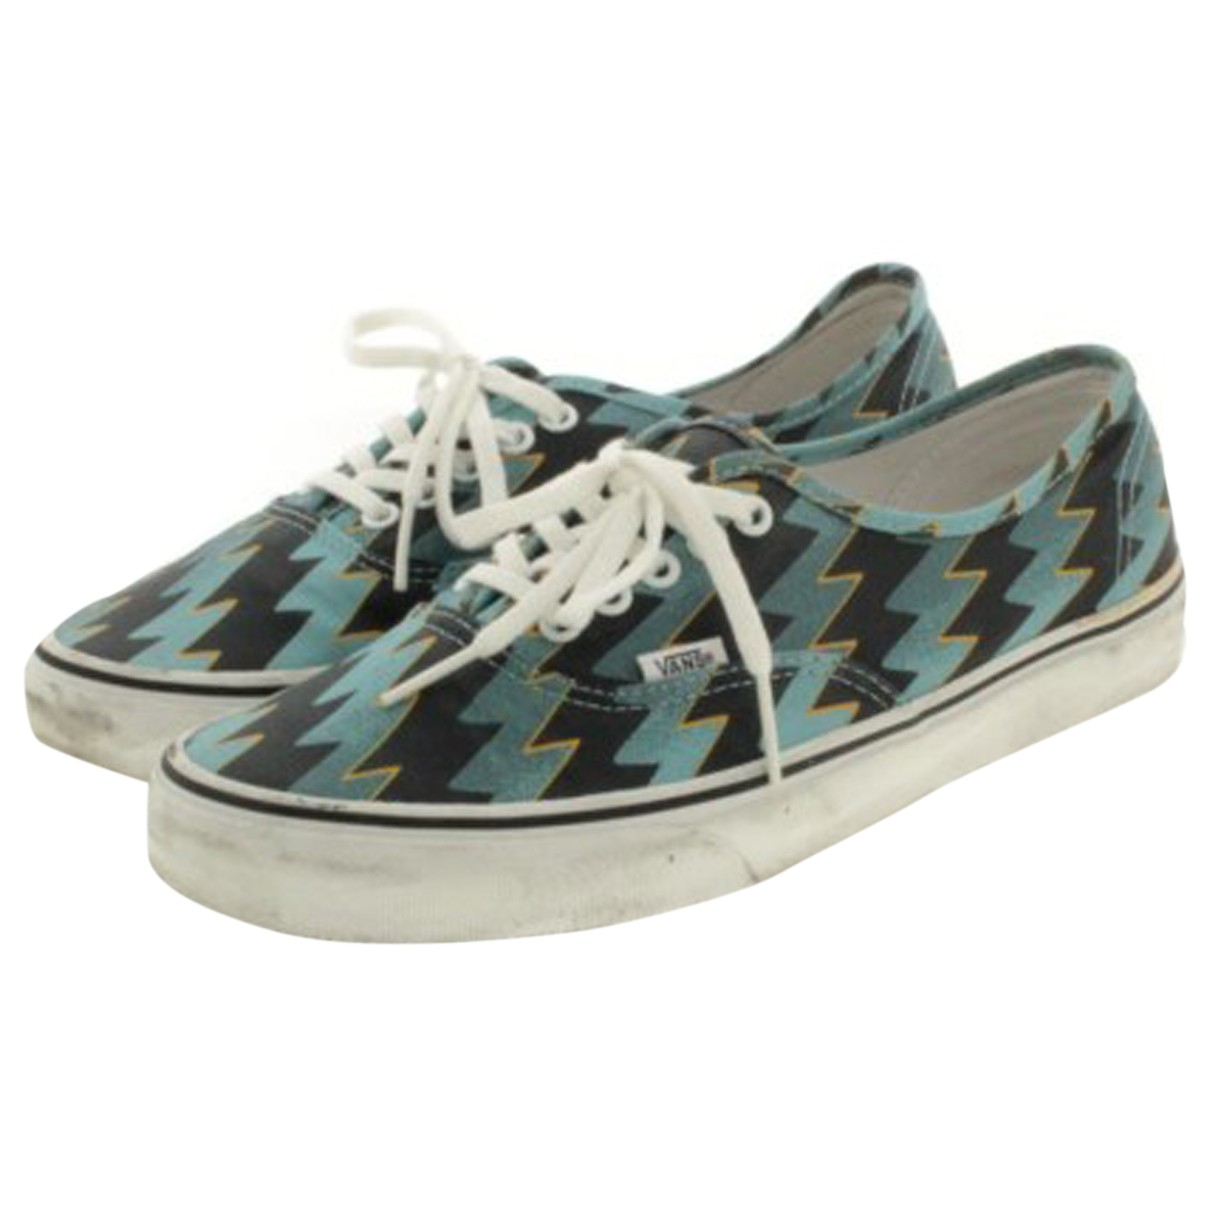 Vans \N Sneakers in  Blau Leinen